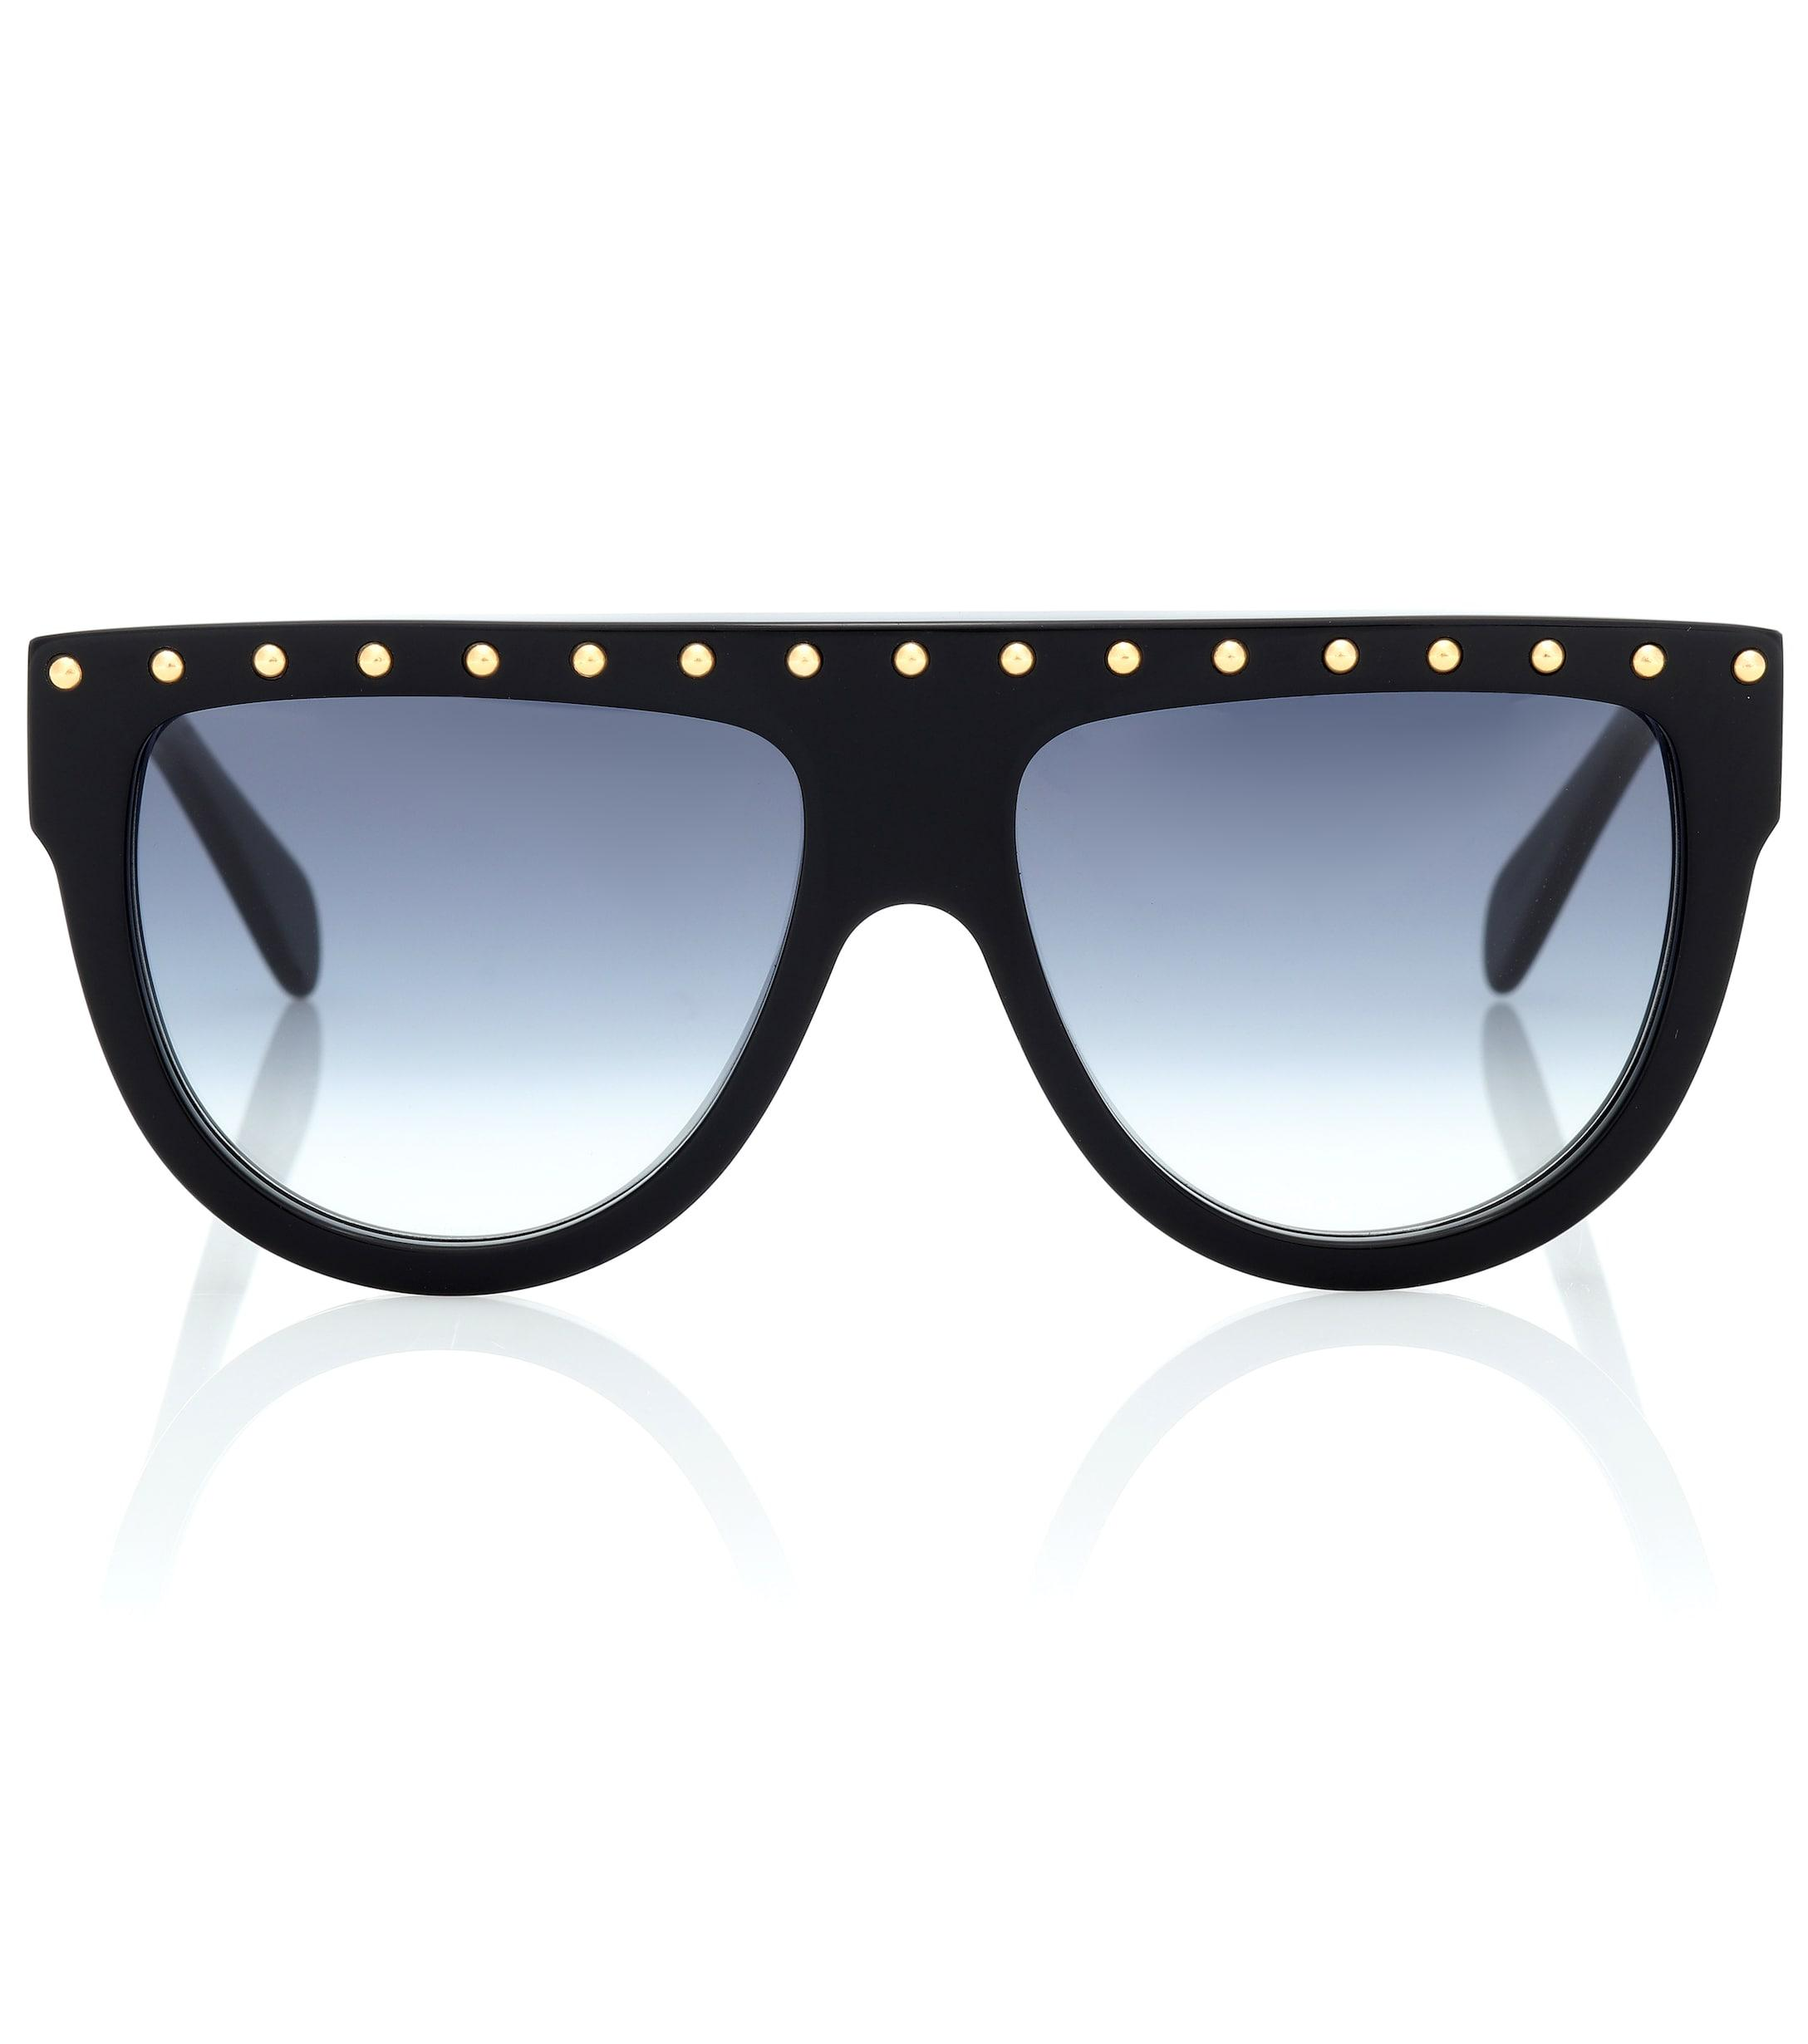 5b770c99e659 Céline Embellished Sunglasses in Black - Lyst